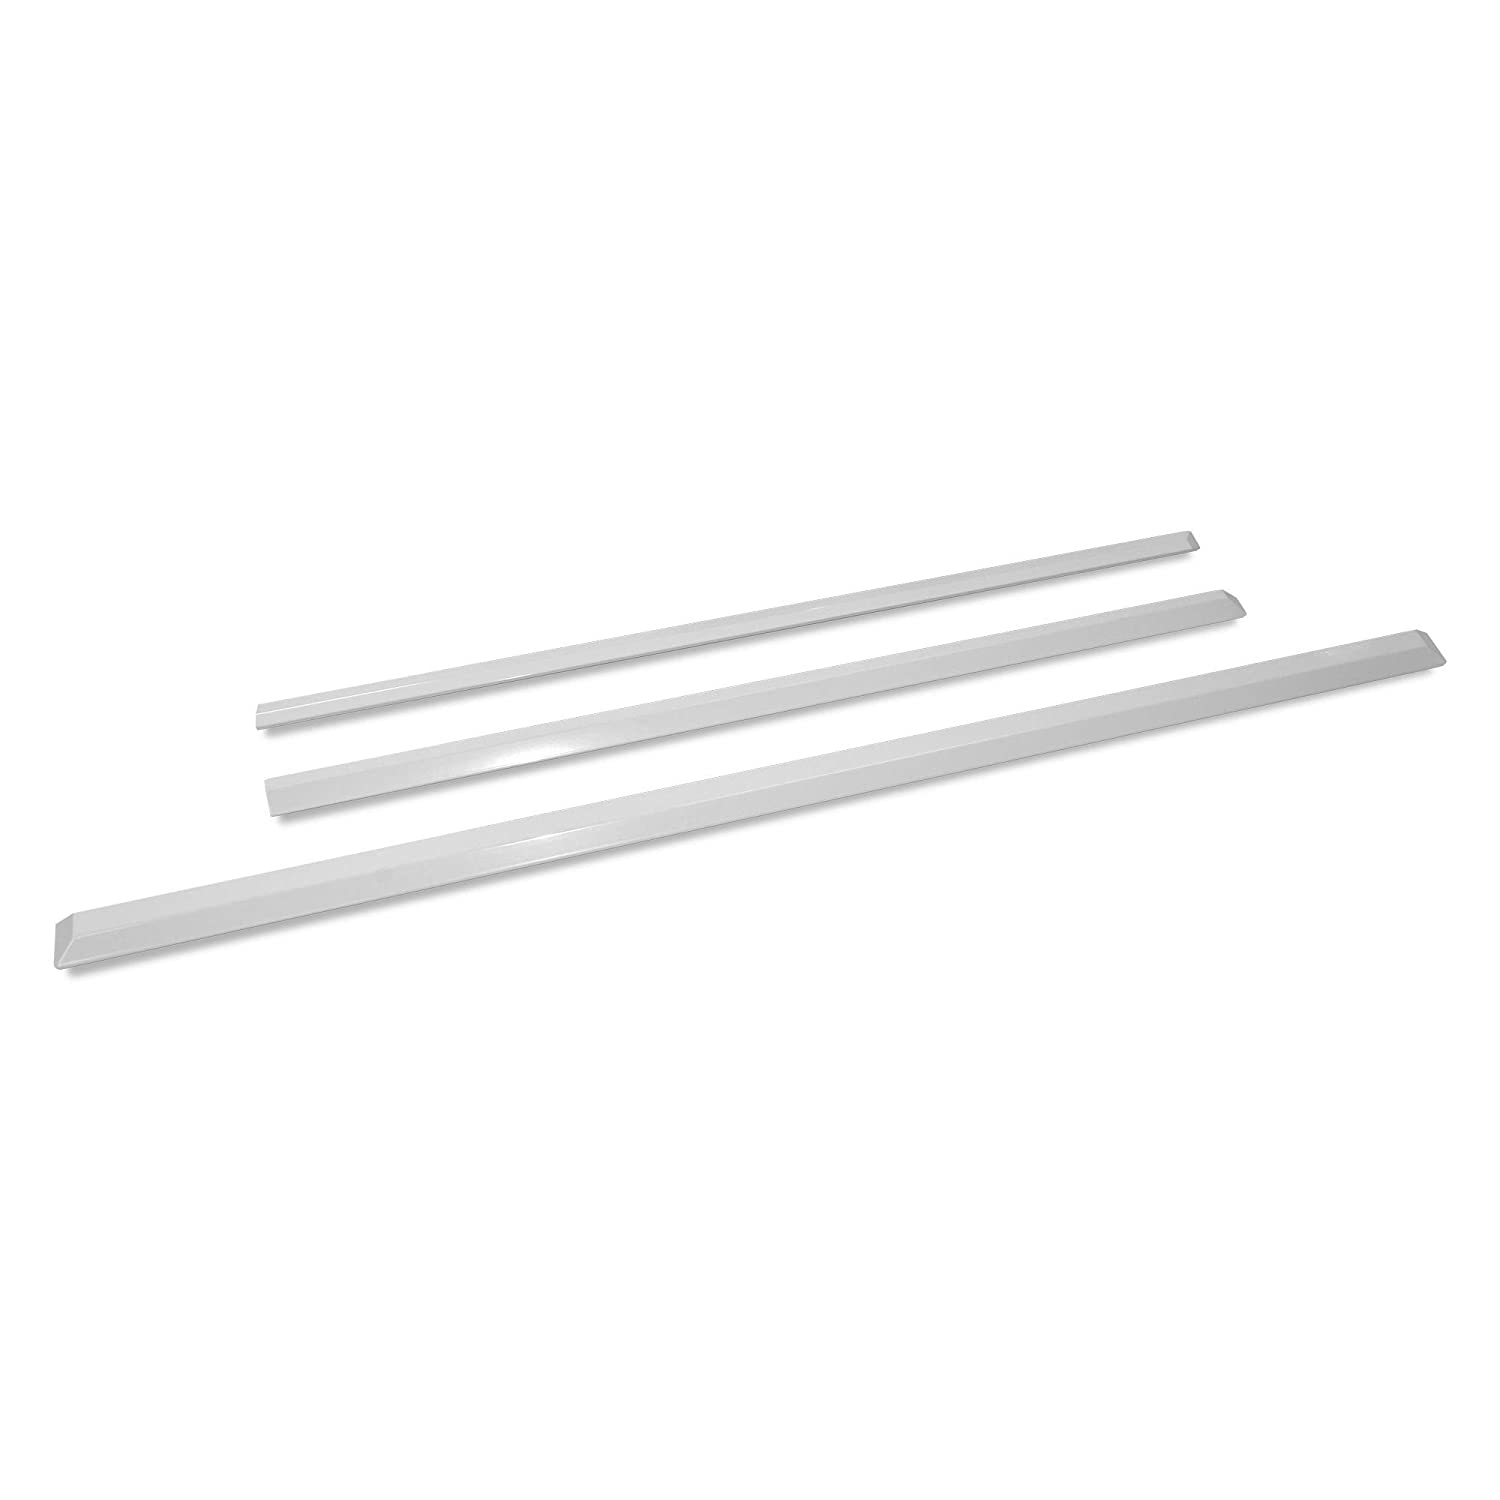 Whirlpool W10675027 Trim Kits